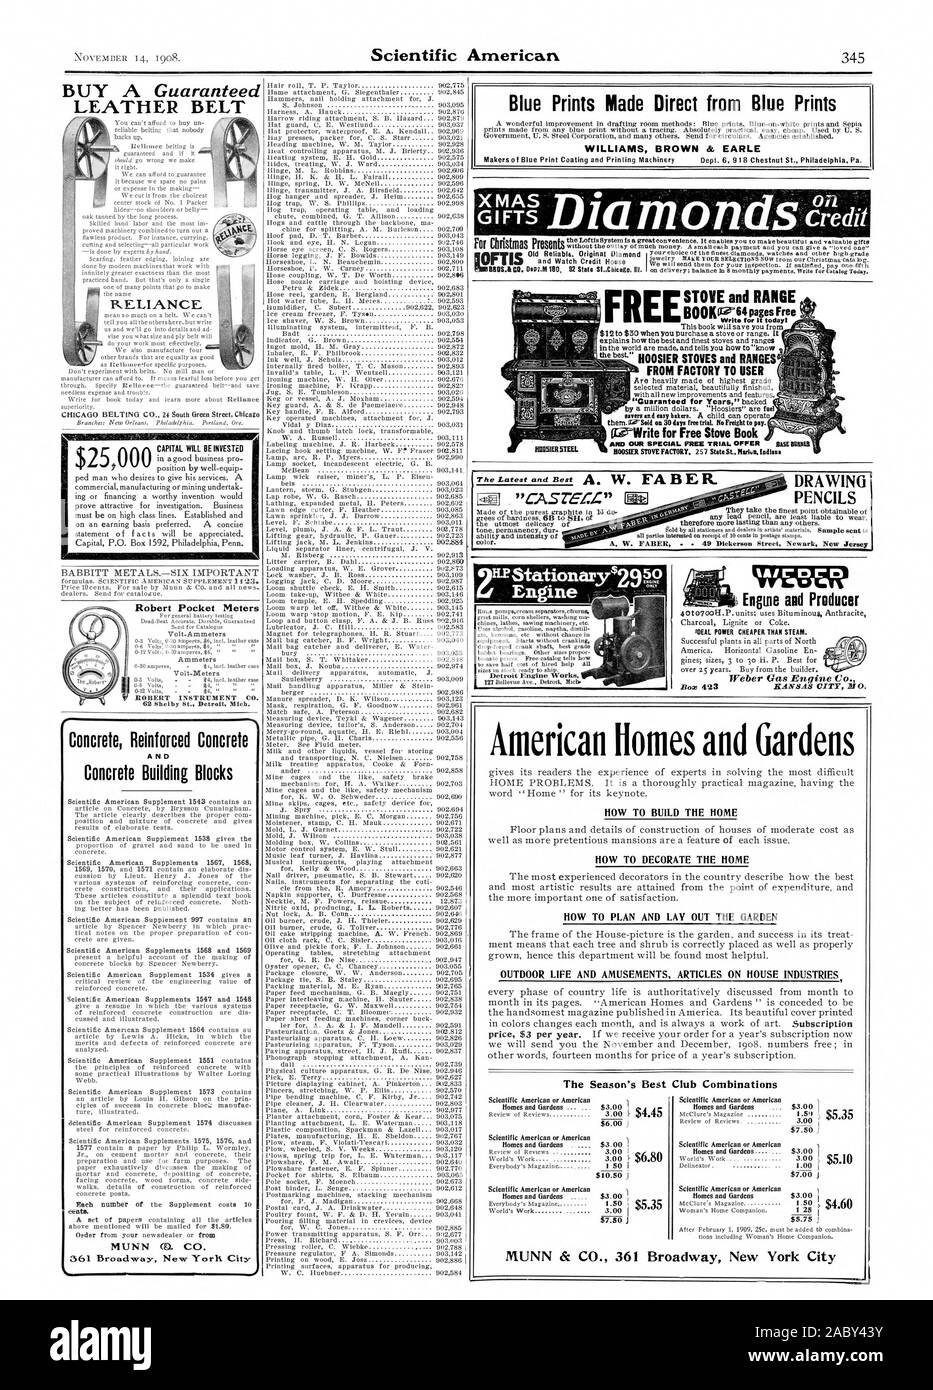 LEATHER BELT RELIANCE BABBITT METALS.-SIX IMPORTANT Robert Pocket Meters Concrete Reinforced Concrete Concrete Building Blocks MUNN CO. CO. Blue Prints Made Direct from Blue Prints WILLIAMS BROWN & EARLE FROM FACTORY TO USER DRAWING PENCILS [-SA 'CASZEZ:Z' STOVE and RANGE tAirorel Engwe and Producer MEAL POWER CHEAPER THAN STEAM. American Homes and Gardens HOW TO BUILD THE HOME HOW TO DECORATE THE HOME HOW TO PLAN AND LAY OUT THE GARDEN OUTDOOR LIFE AND AMUSEMENTS ARTICLES ON HOUSE INDUSTRIES The Season's Best Club Combinations i MUNN & CO. 361 Broadway New York City, scientific american, 1908 Stock Photo